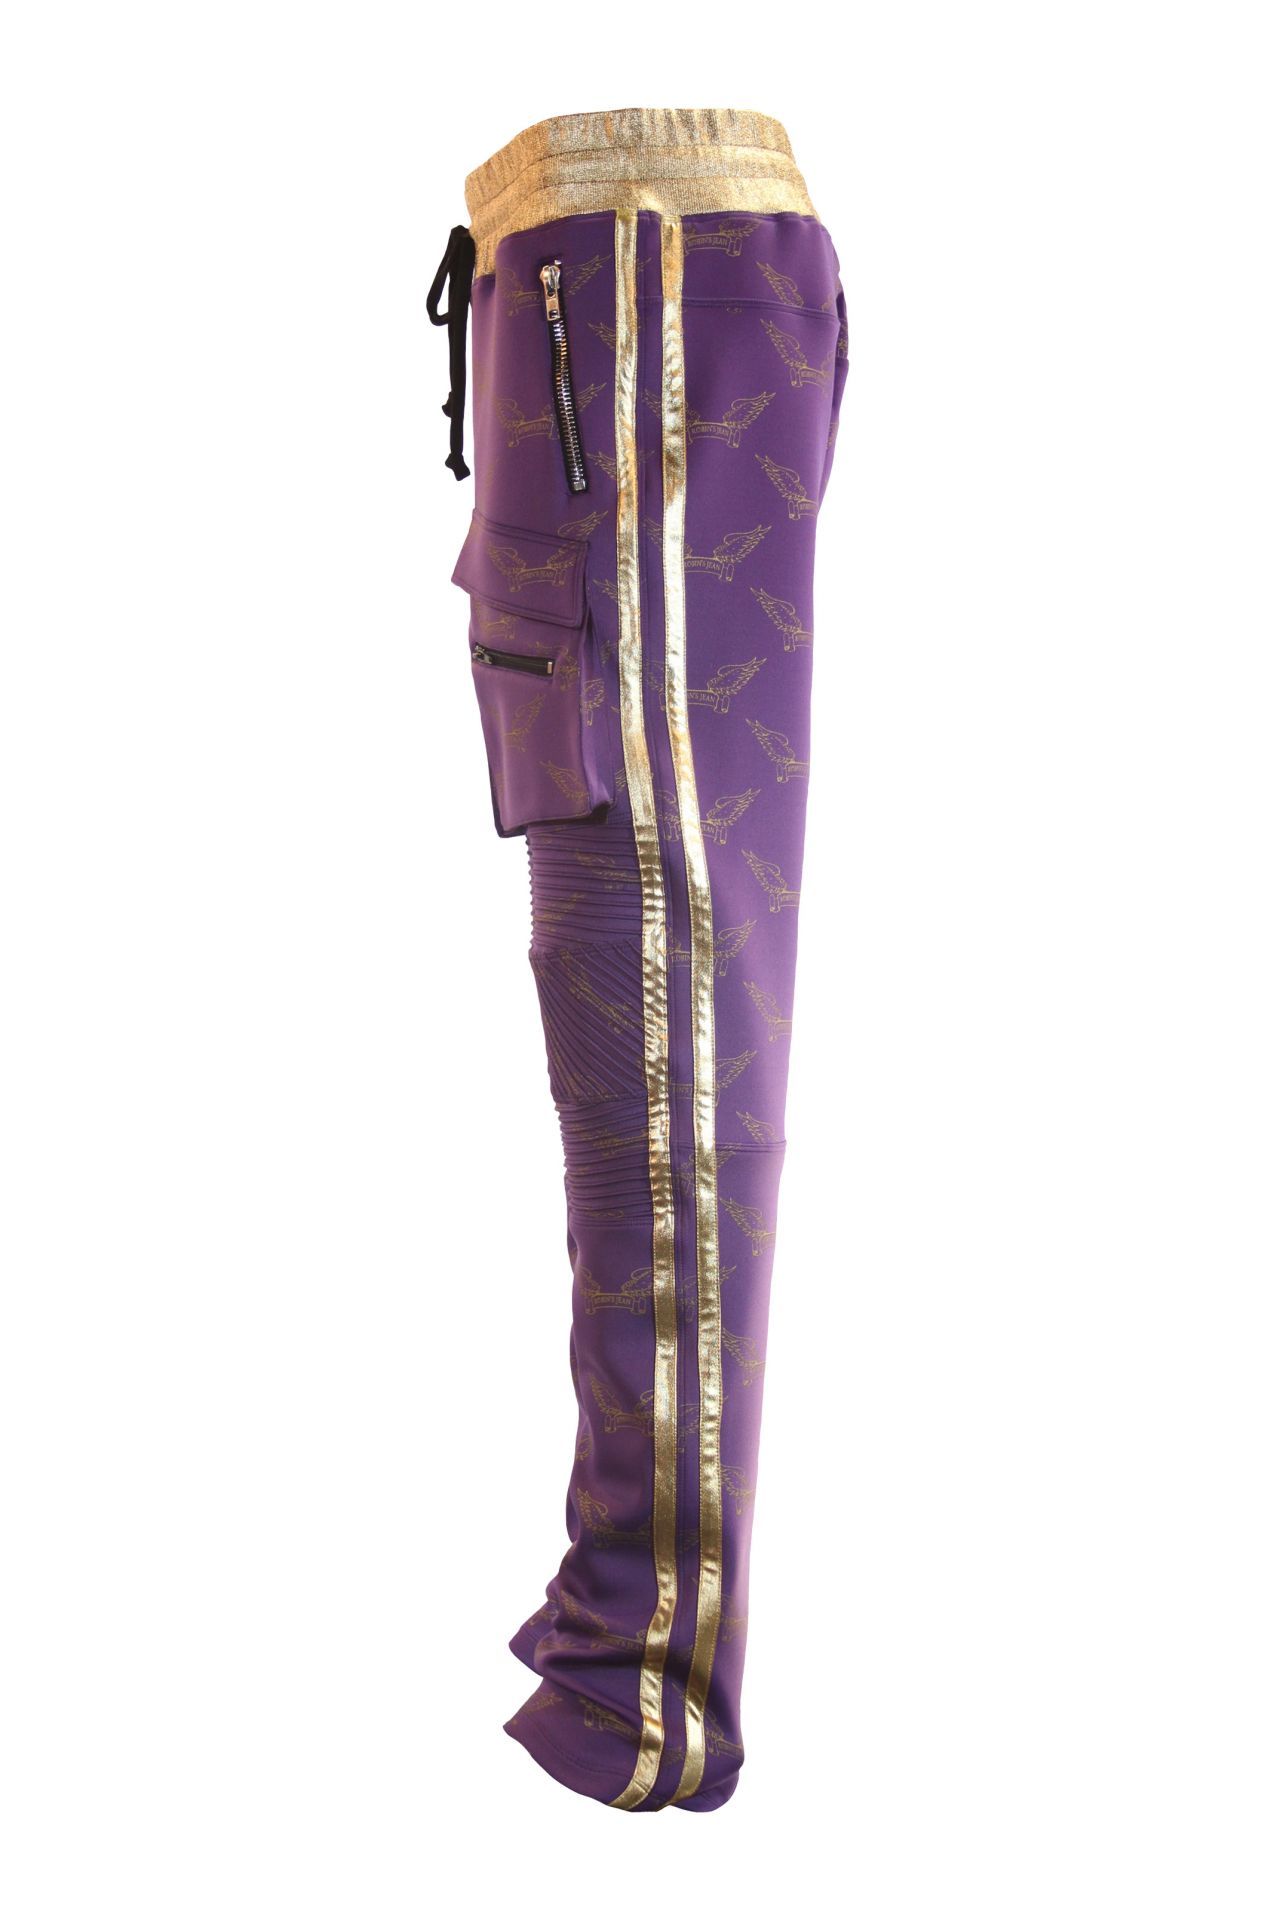 ROBIN'S MONOGRAM JOGGER IN PURPLE AND GOLD